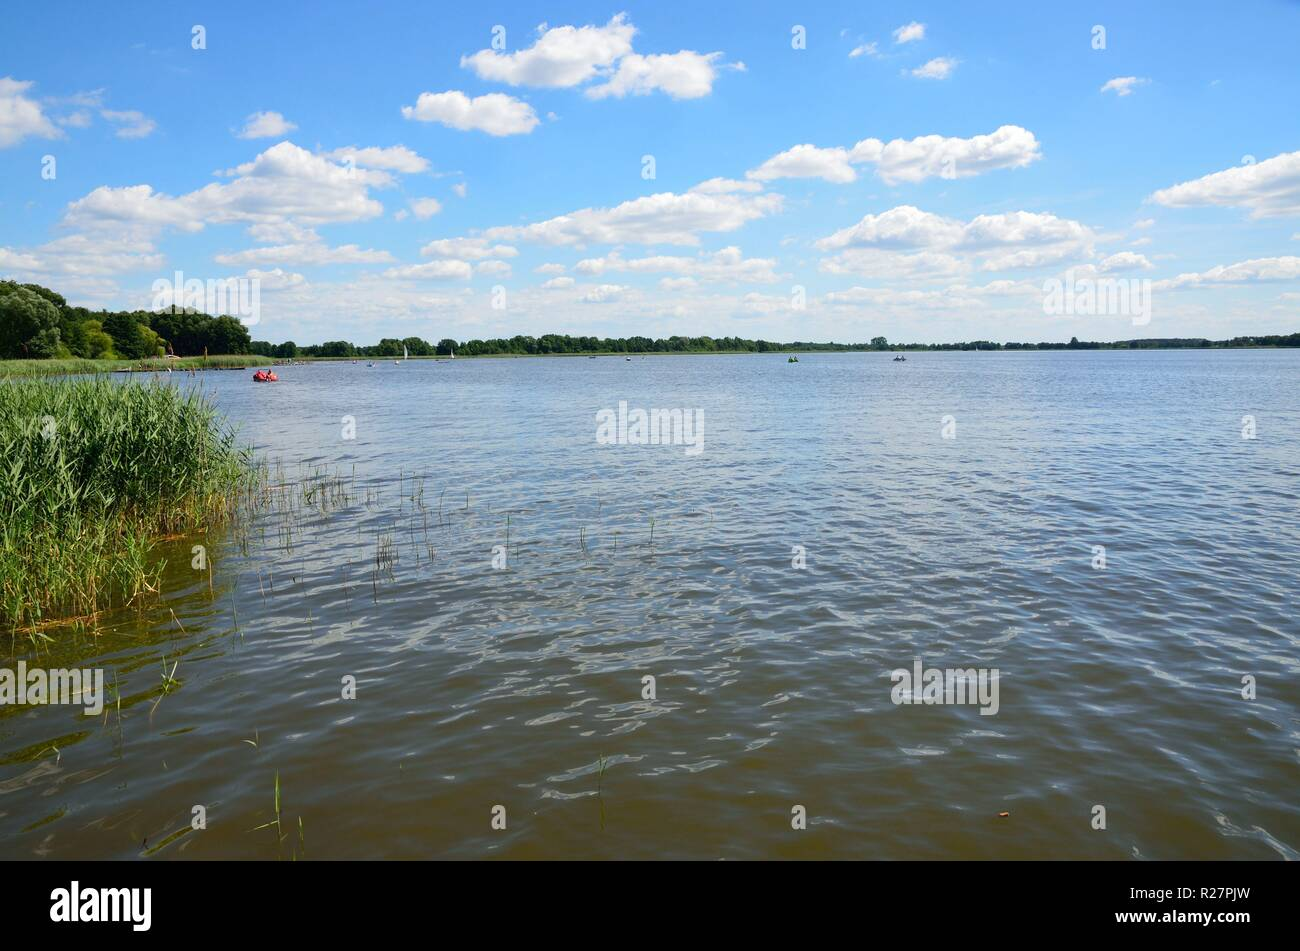 Landscape in Poland. Wielenskie lake in Wielen. Blue sky with single clouds and clean water. - Stock Image